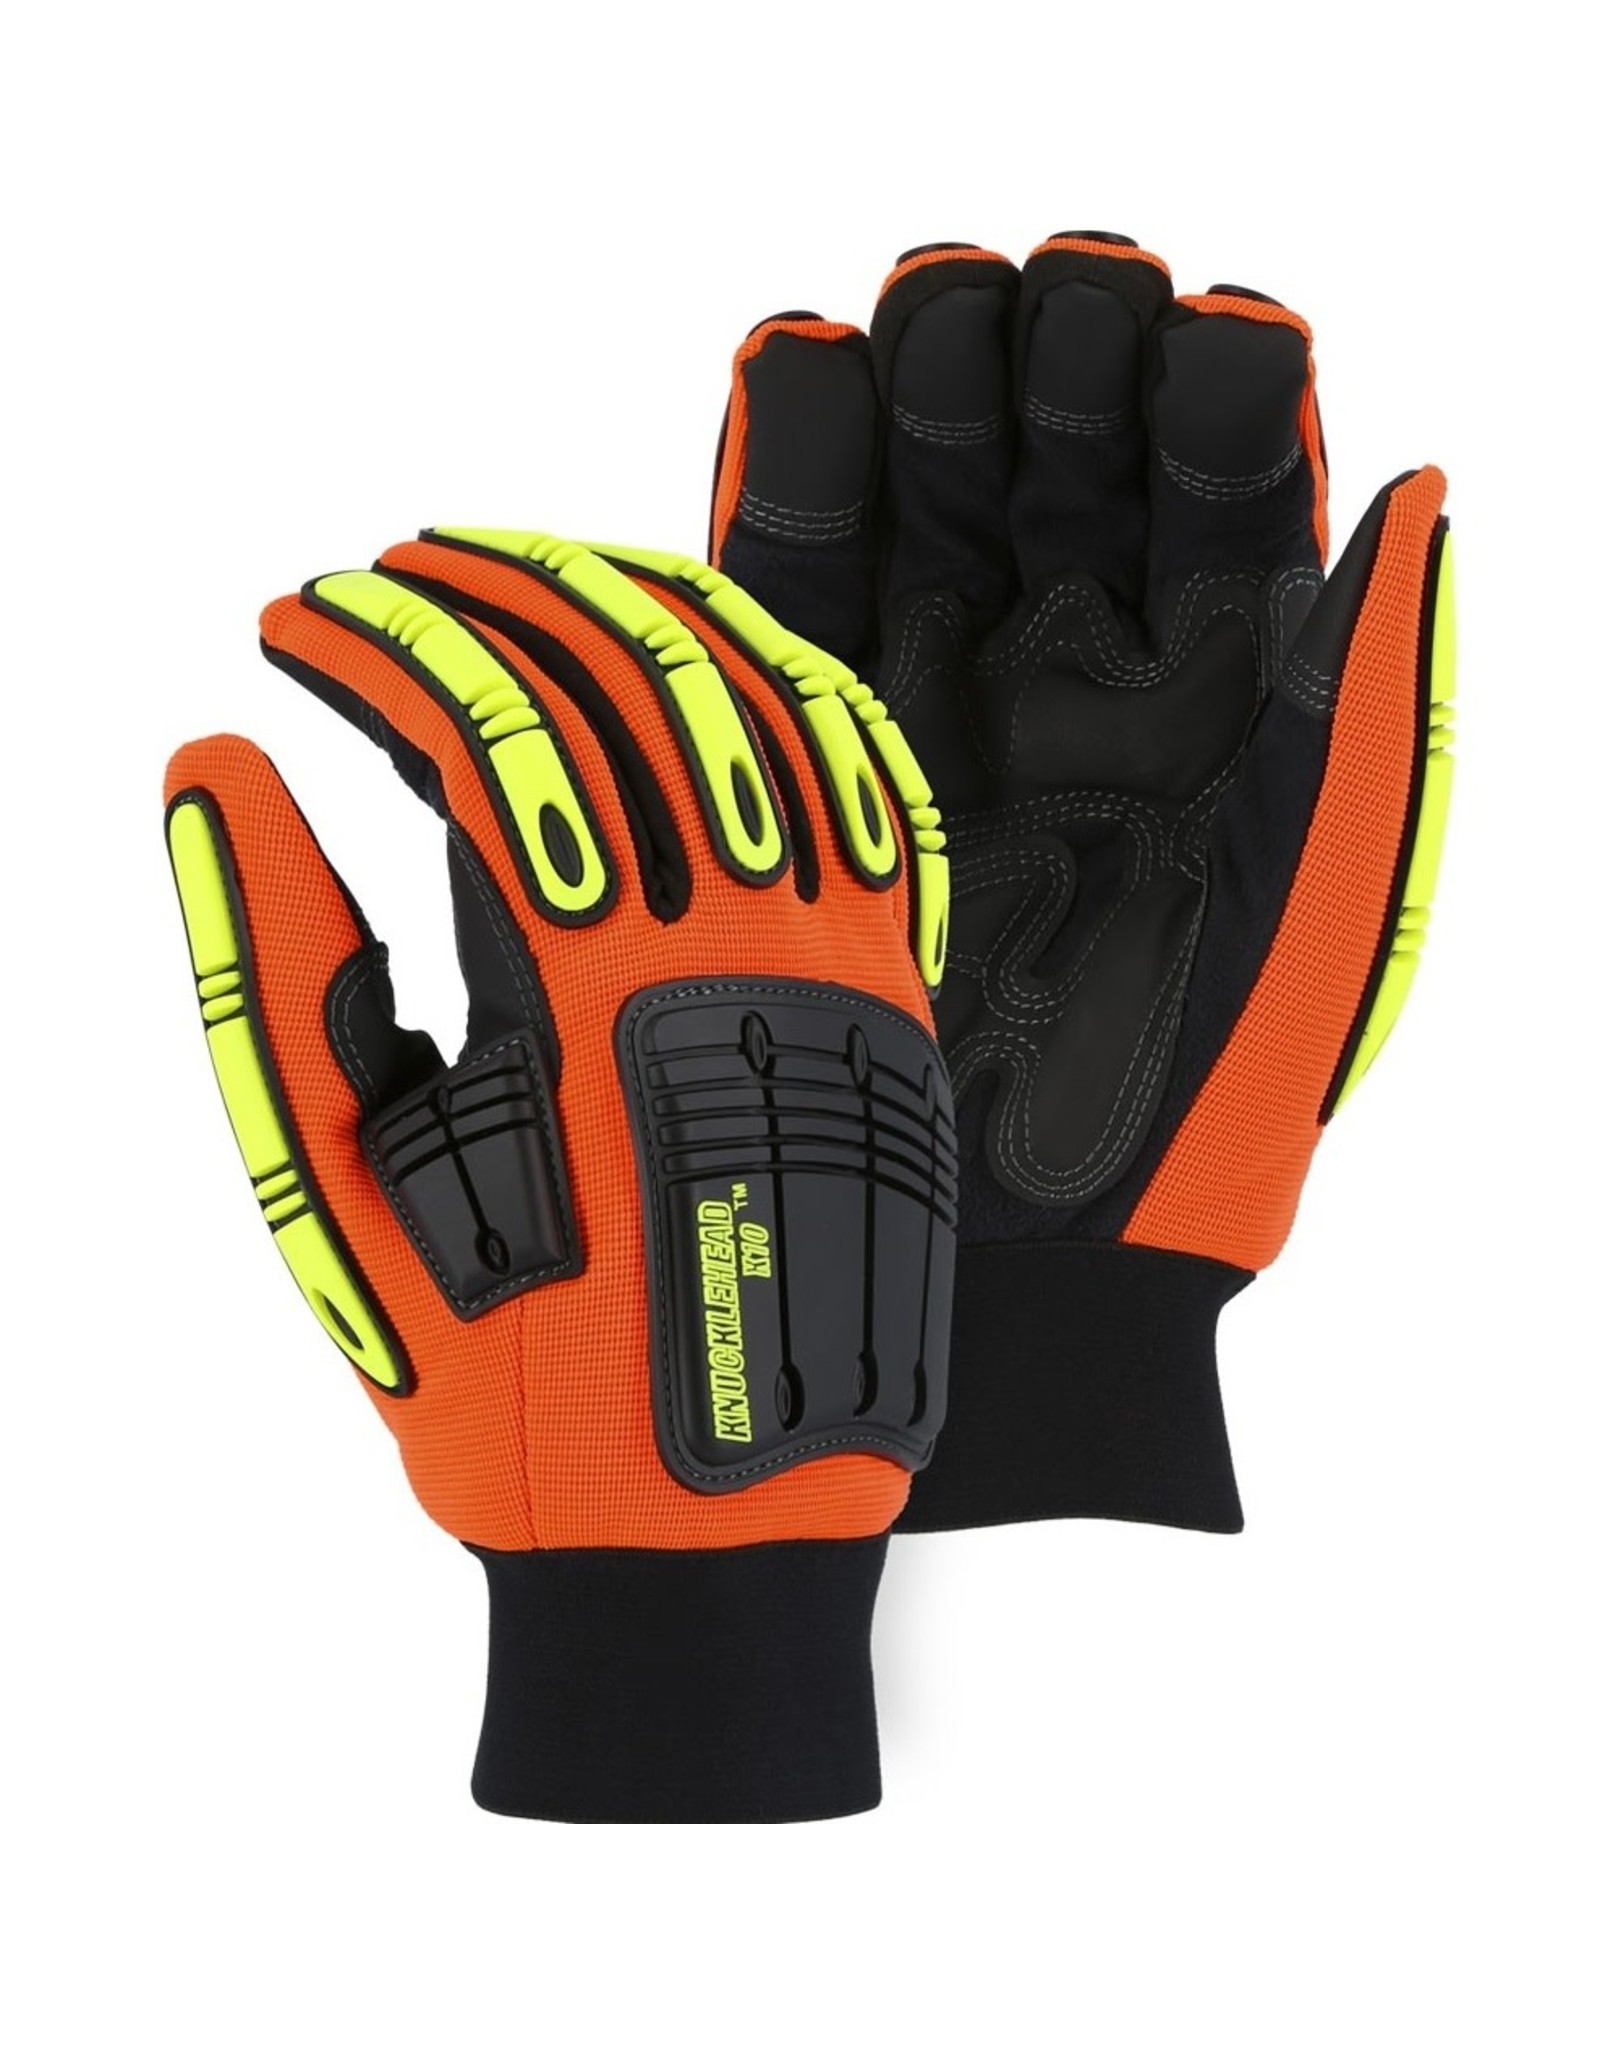 Majestic Glove Winter Lined Knucklehead X10 Armor Skin Mechanics Glove With Impact Protection